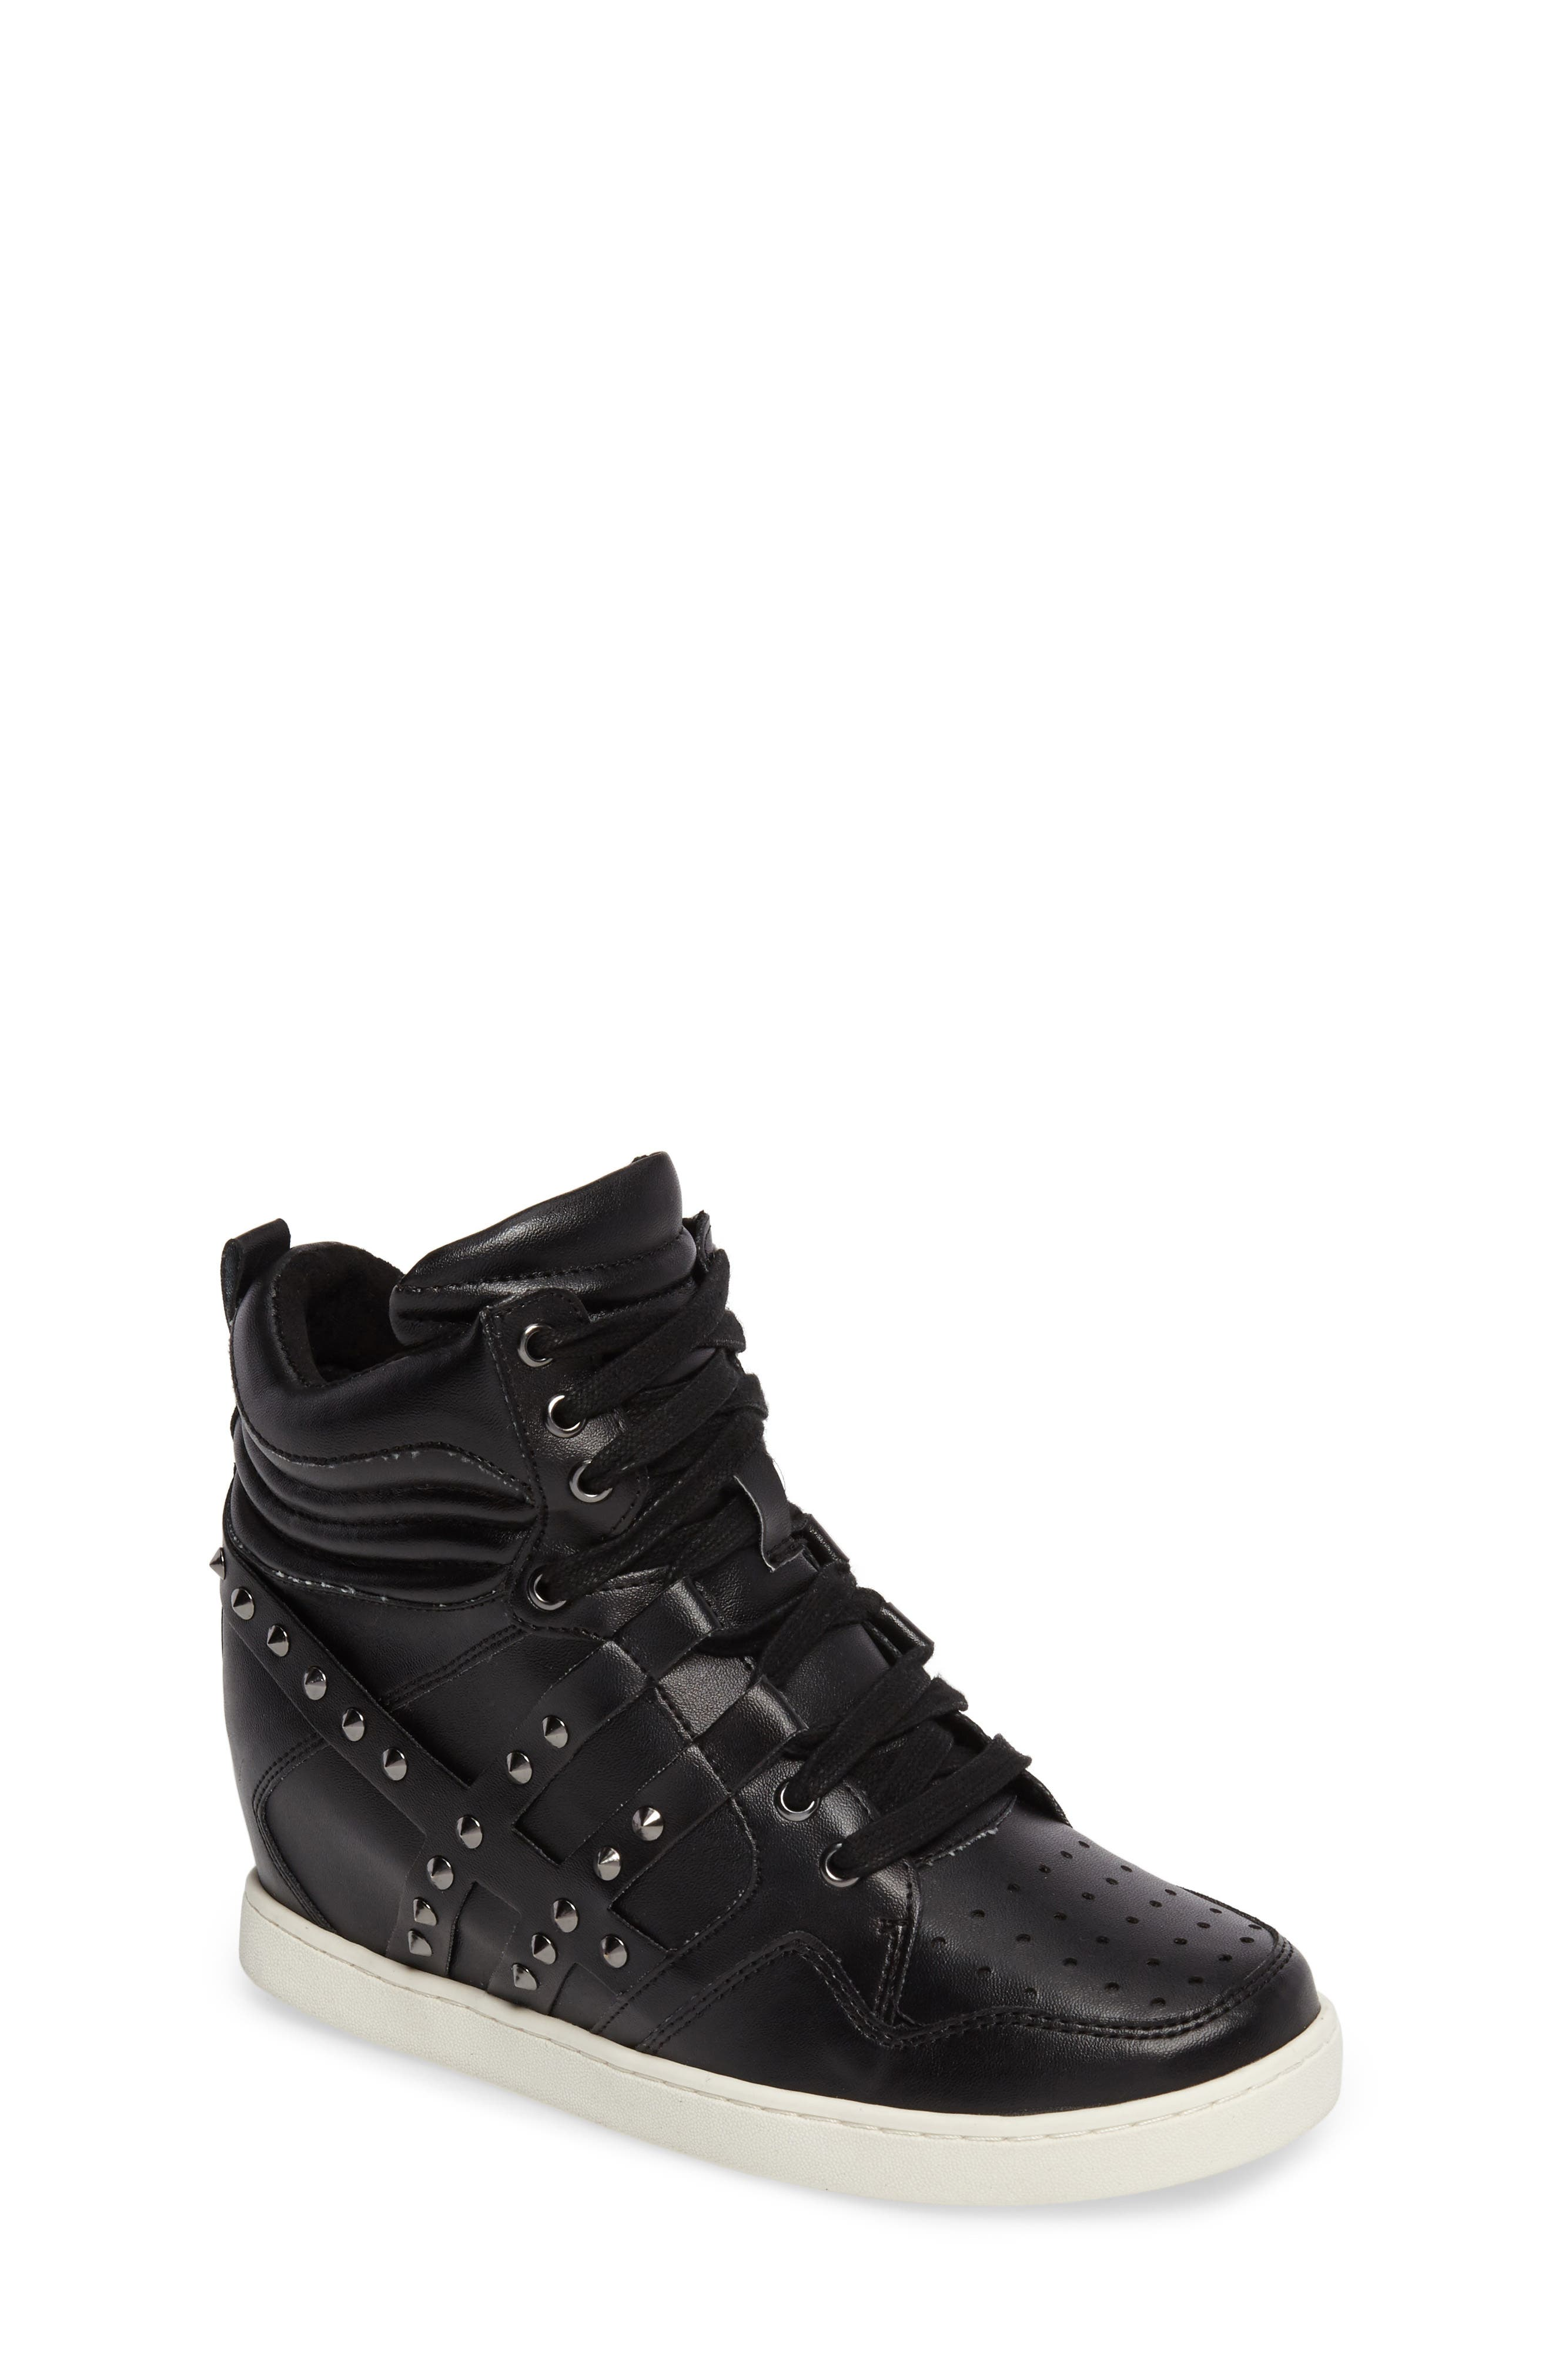 Boogie Chic Studded High Top Sneaker,                             Main thumbnail 1, color,                             001